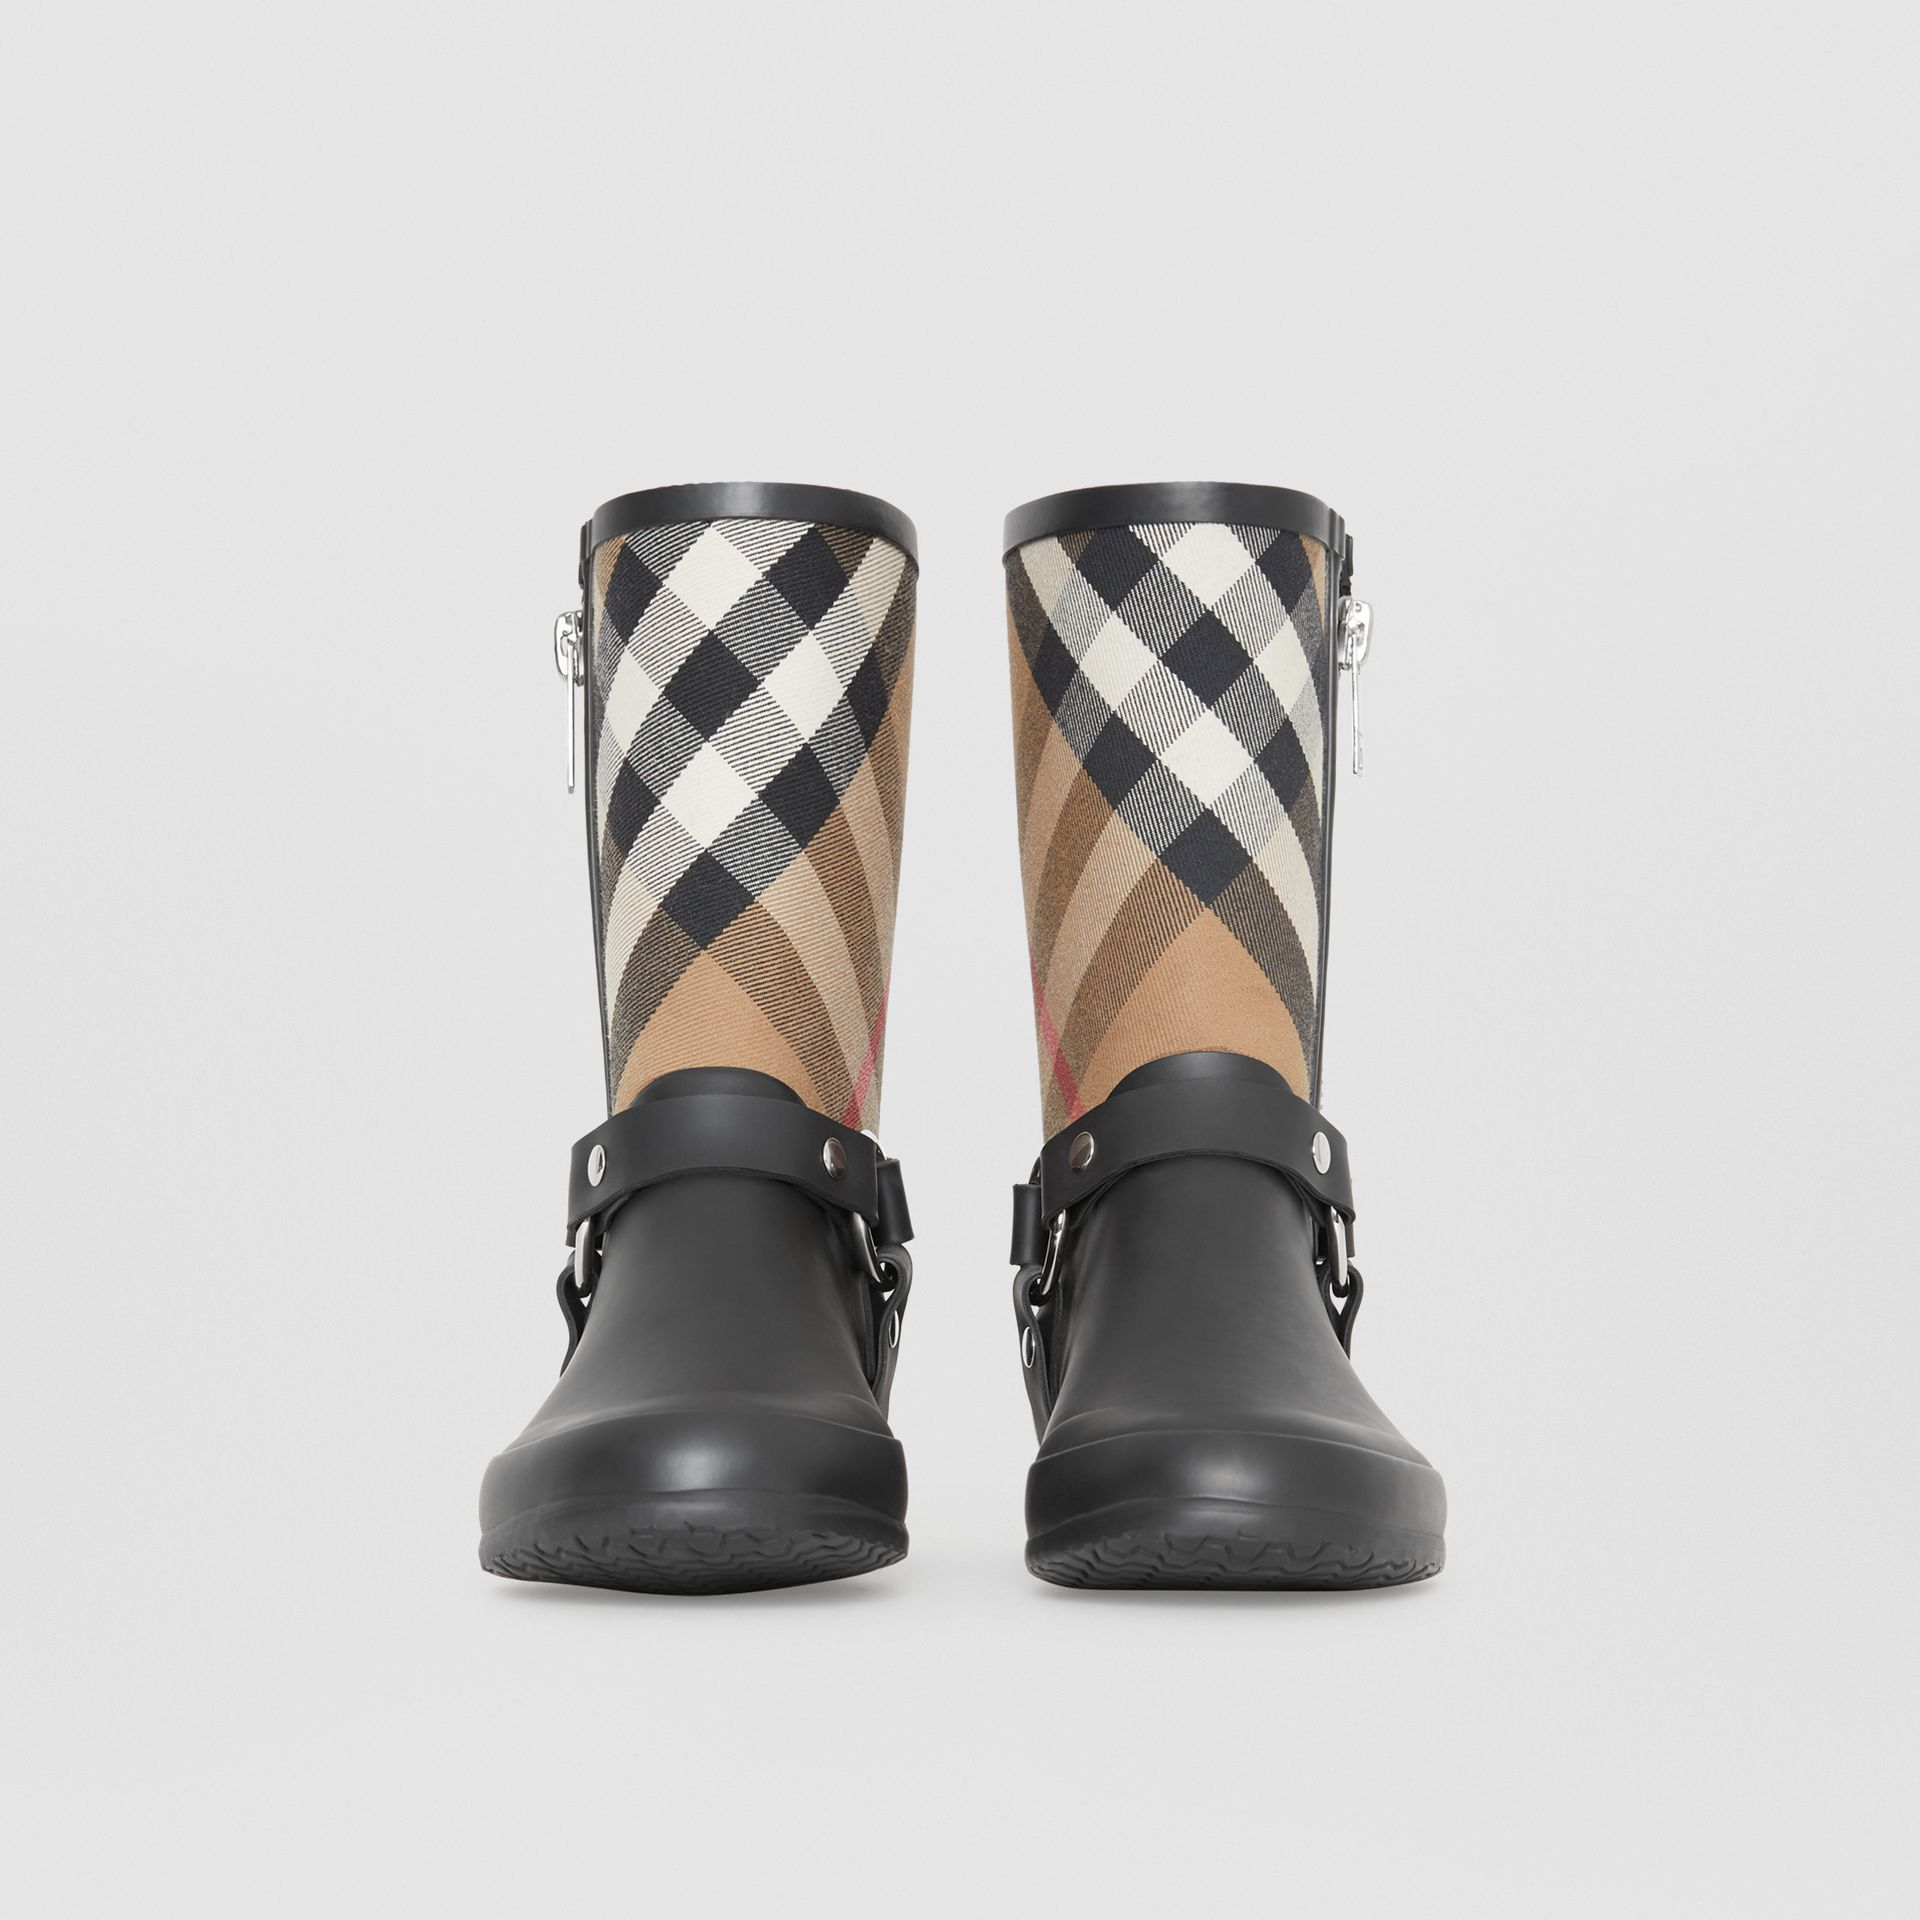 Buckle and Strap Detail Check Rain Boots in House Check/black - Women | Burberry Hong Kong S.A.R - gallery image 3